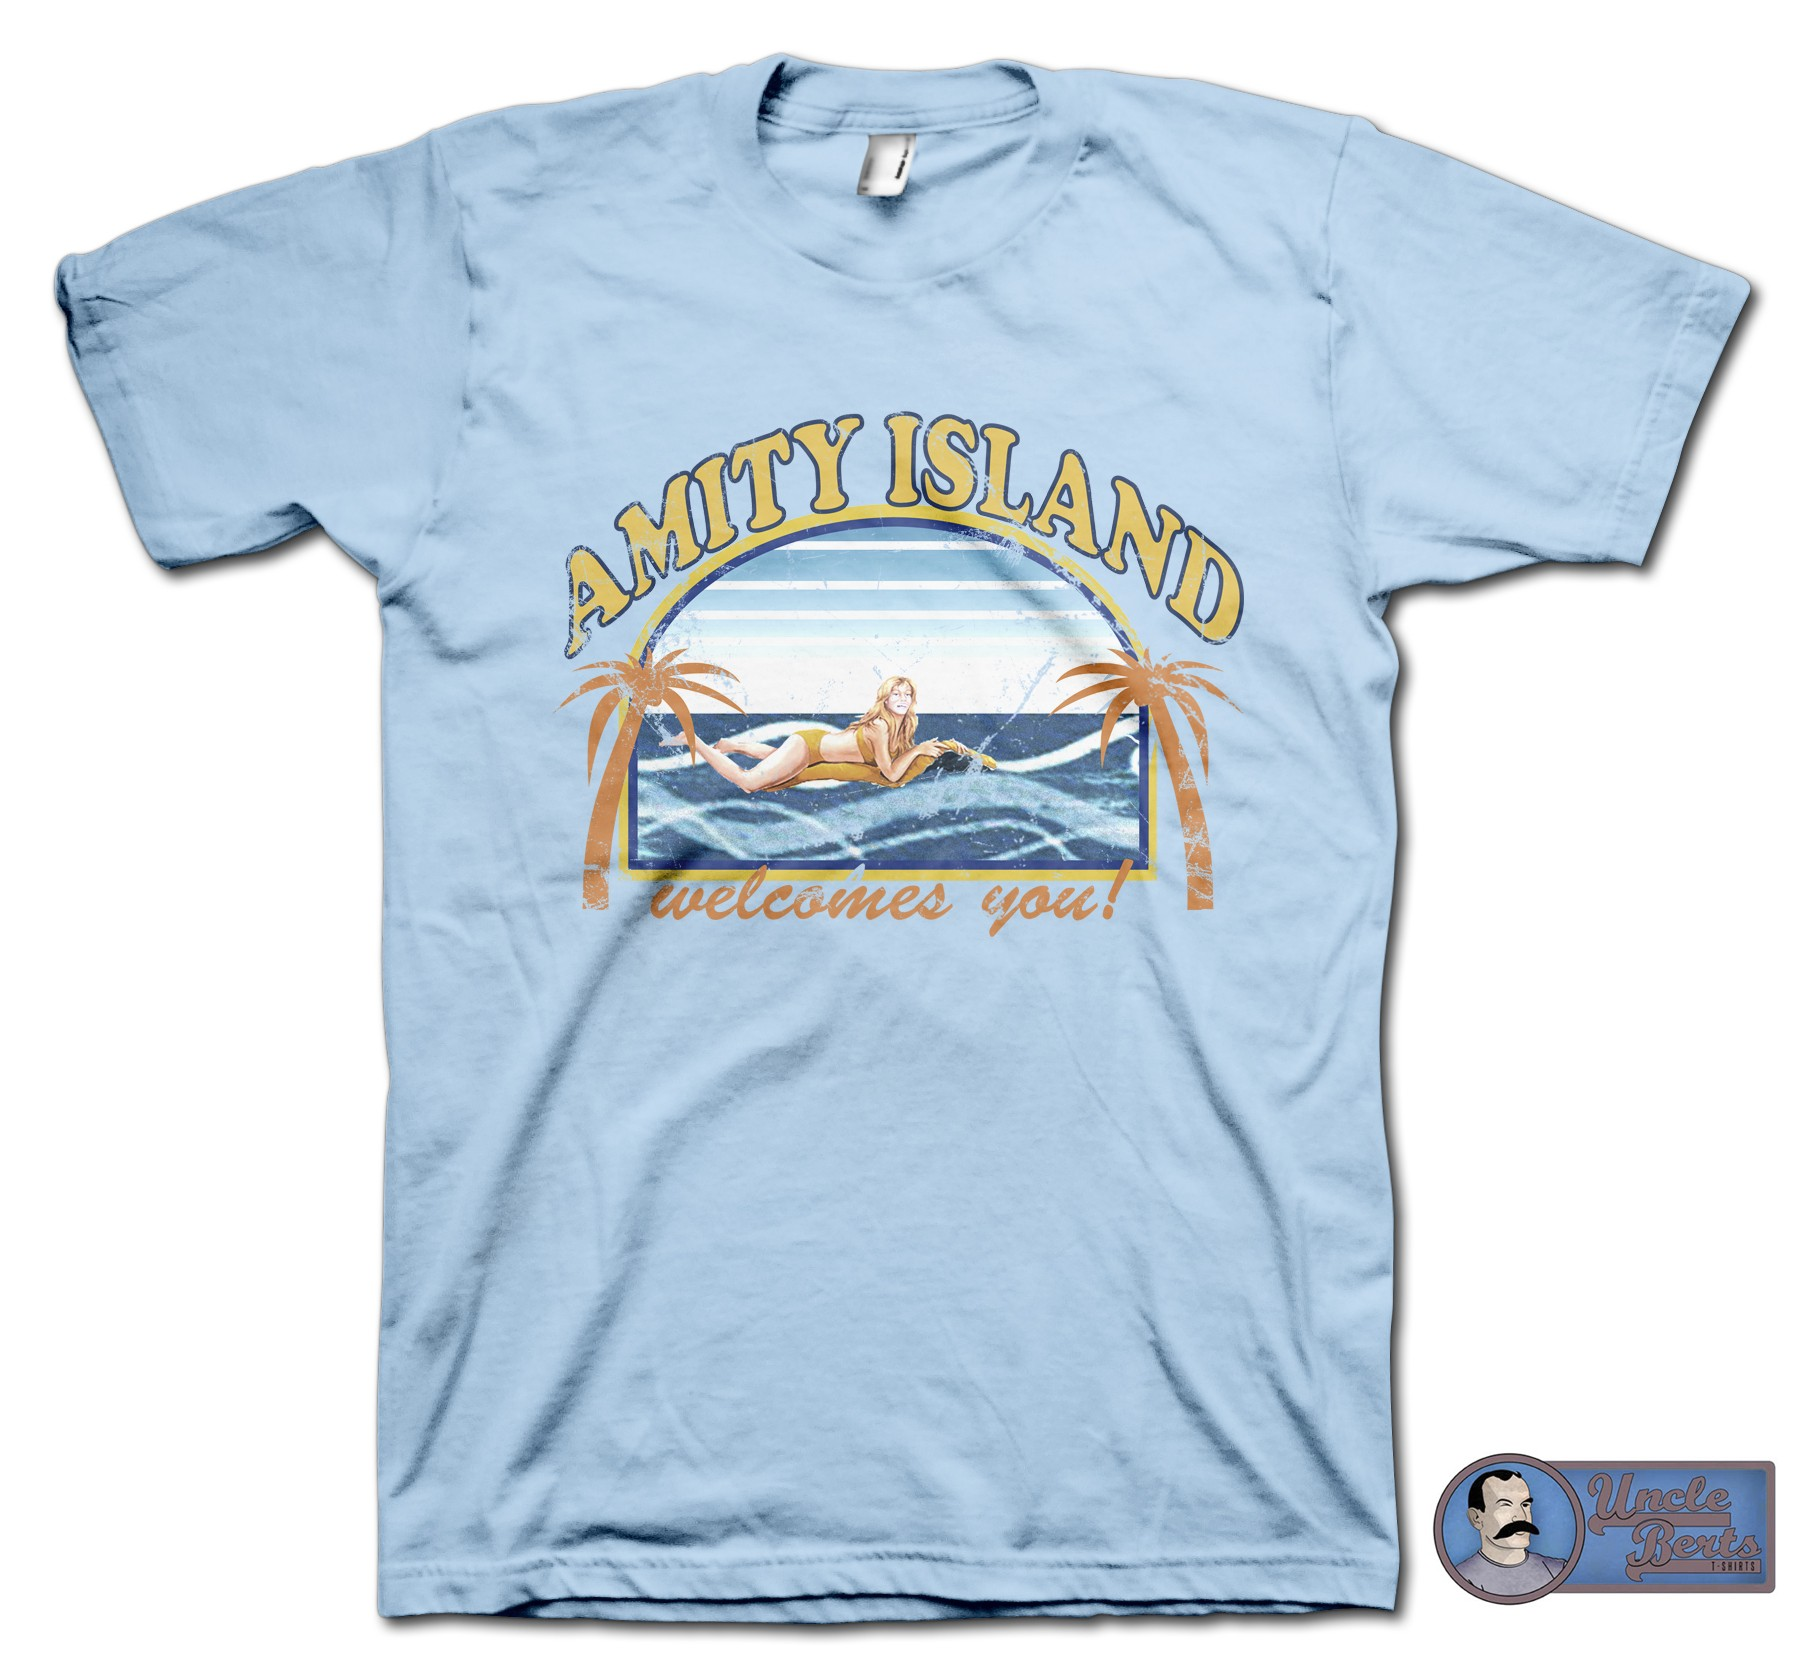 JAWS (1974) Inspired Amity Island T-Shirt